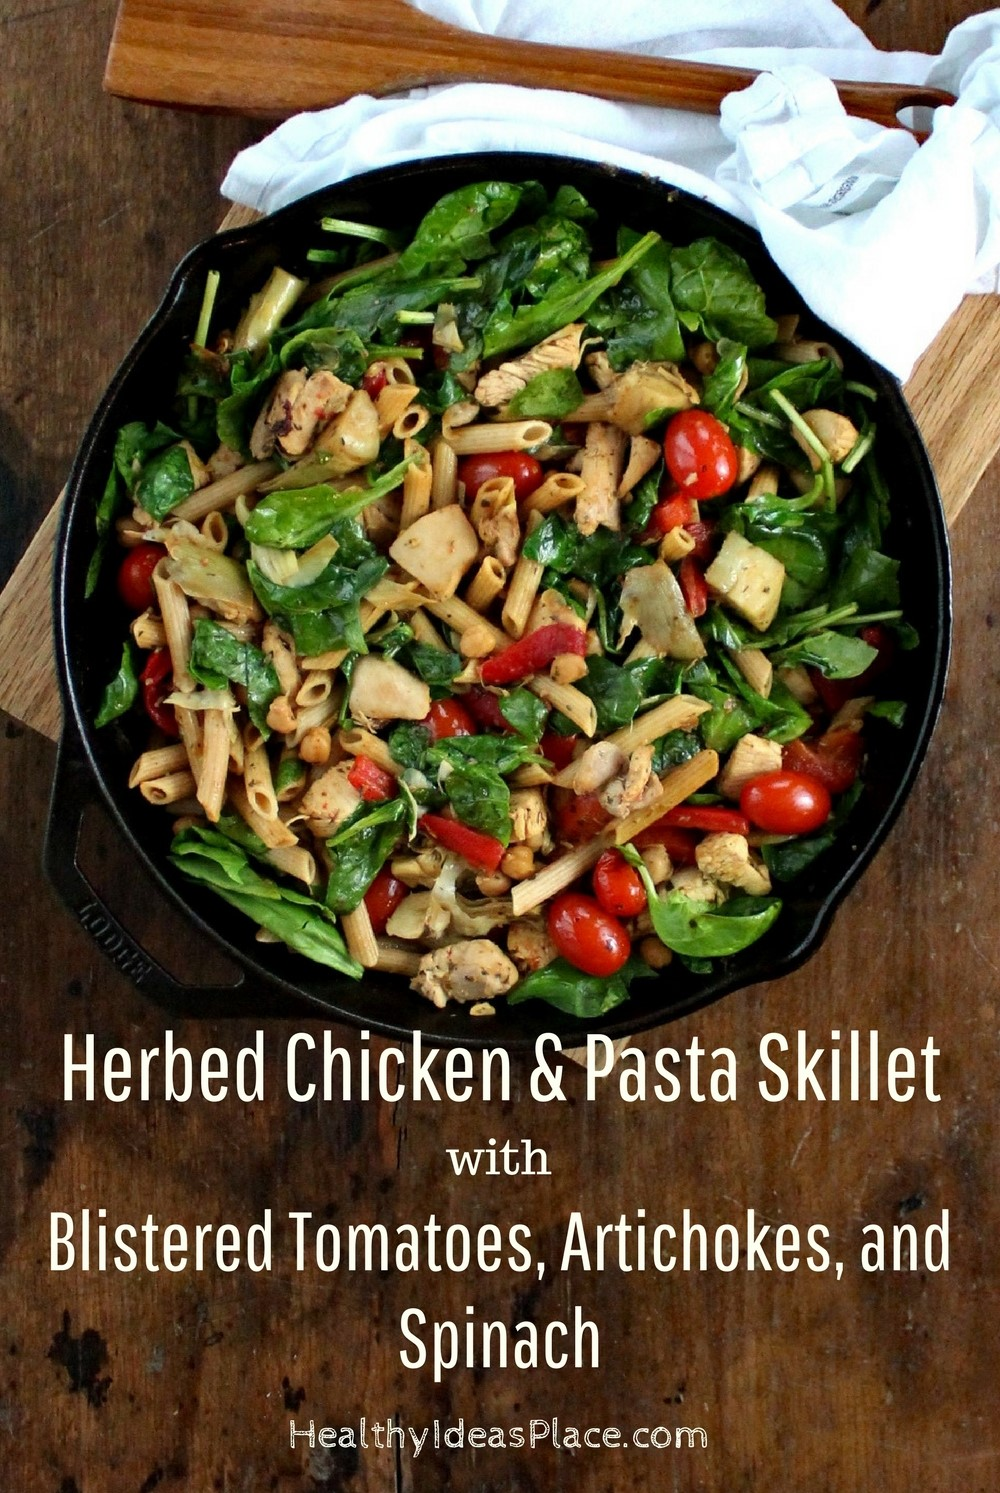 Herbed Chicken and Pasta Skillet with Blistered Tomatoes, Artichokes, and Spinach – Nourishing vegetables and chicken are flavored with a delicious lemon and herb marinade. Simple to make recipe, delicious, and colorful.